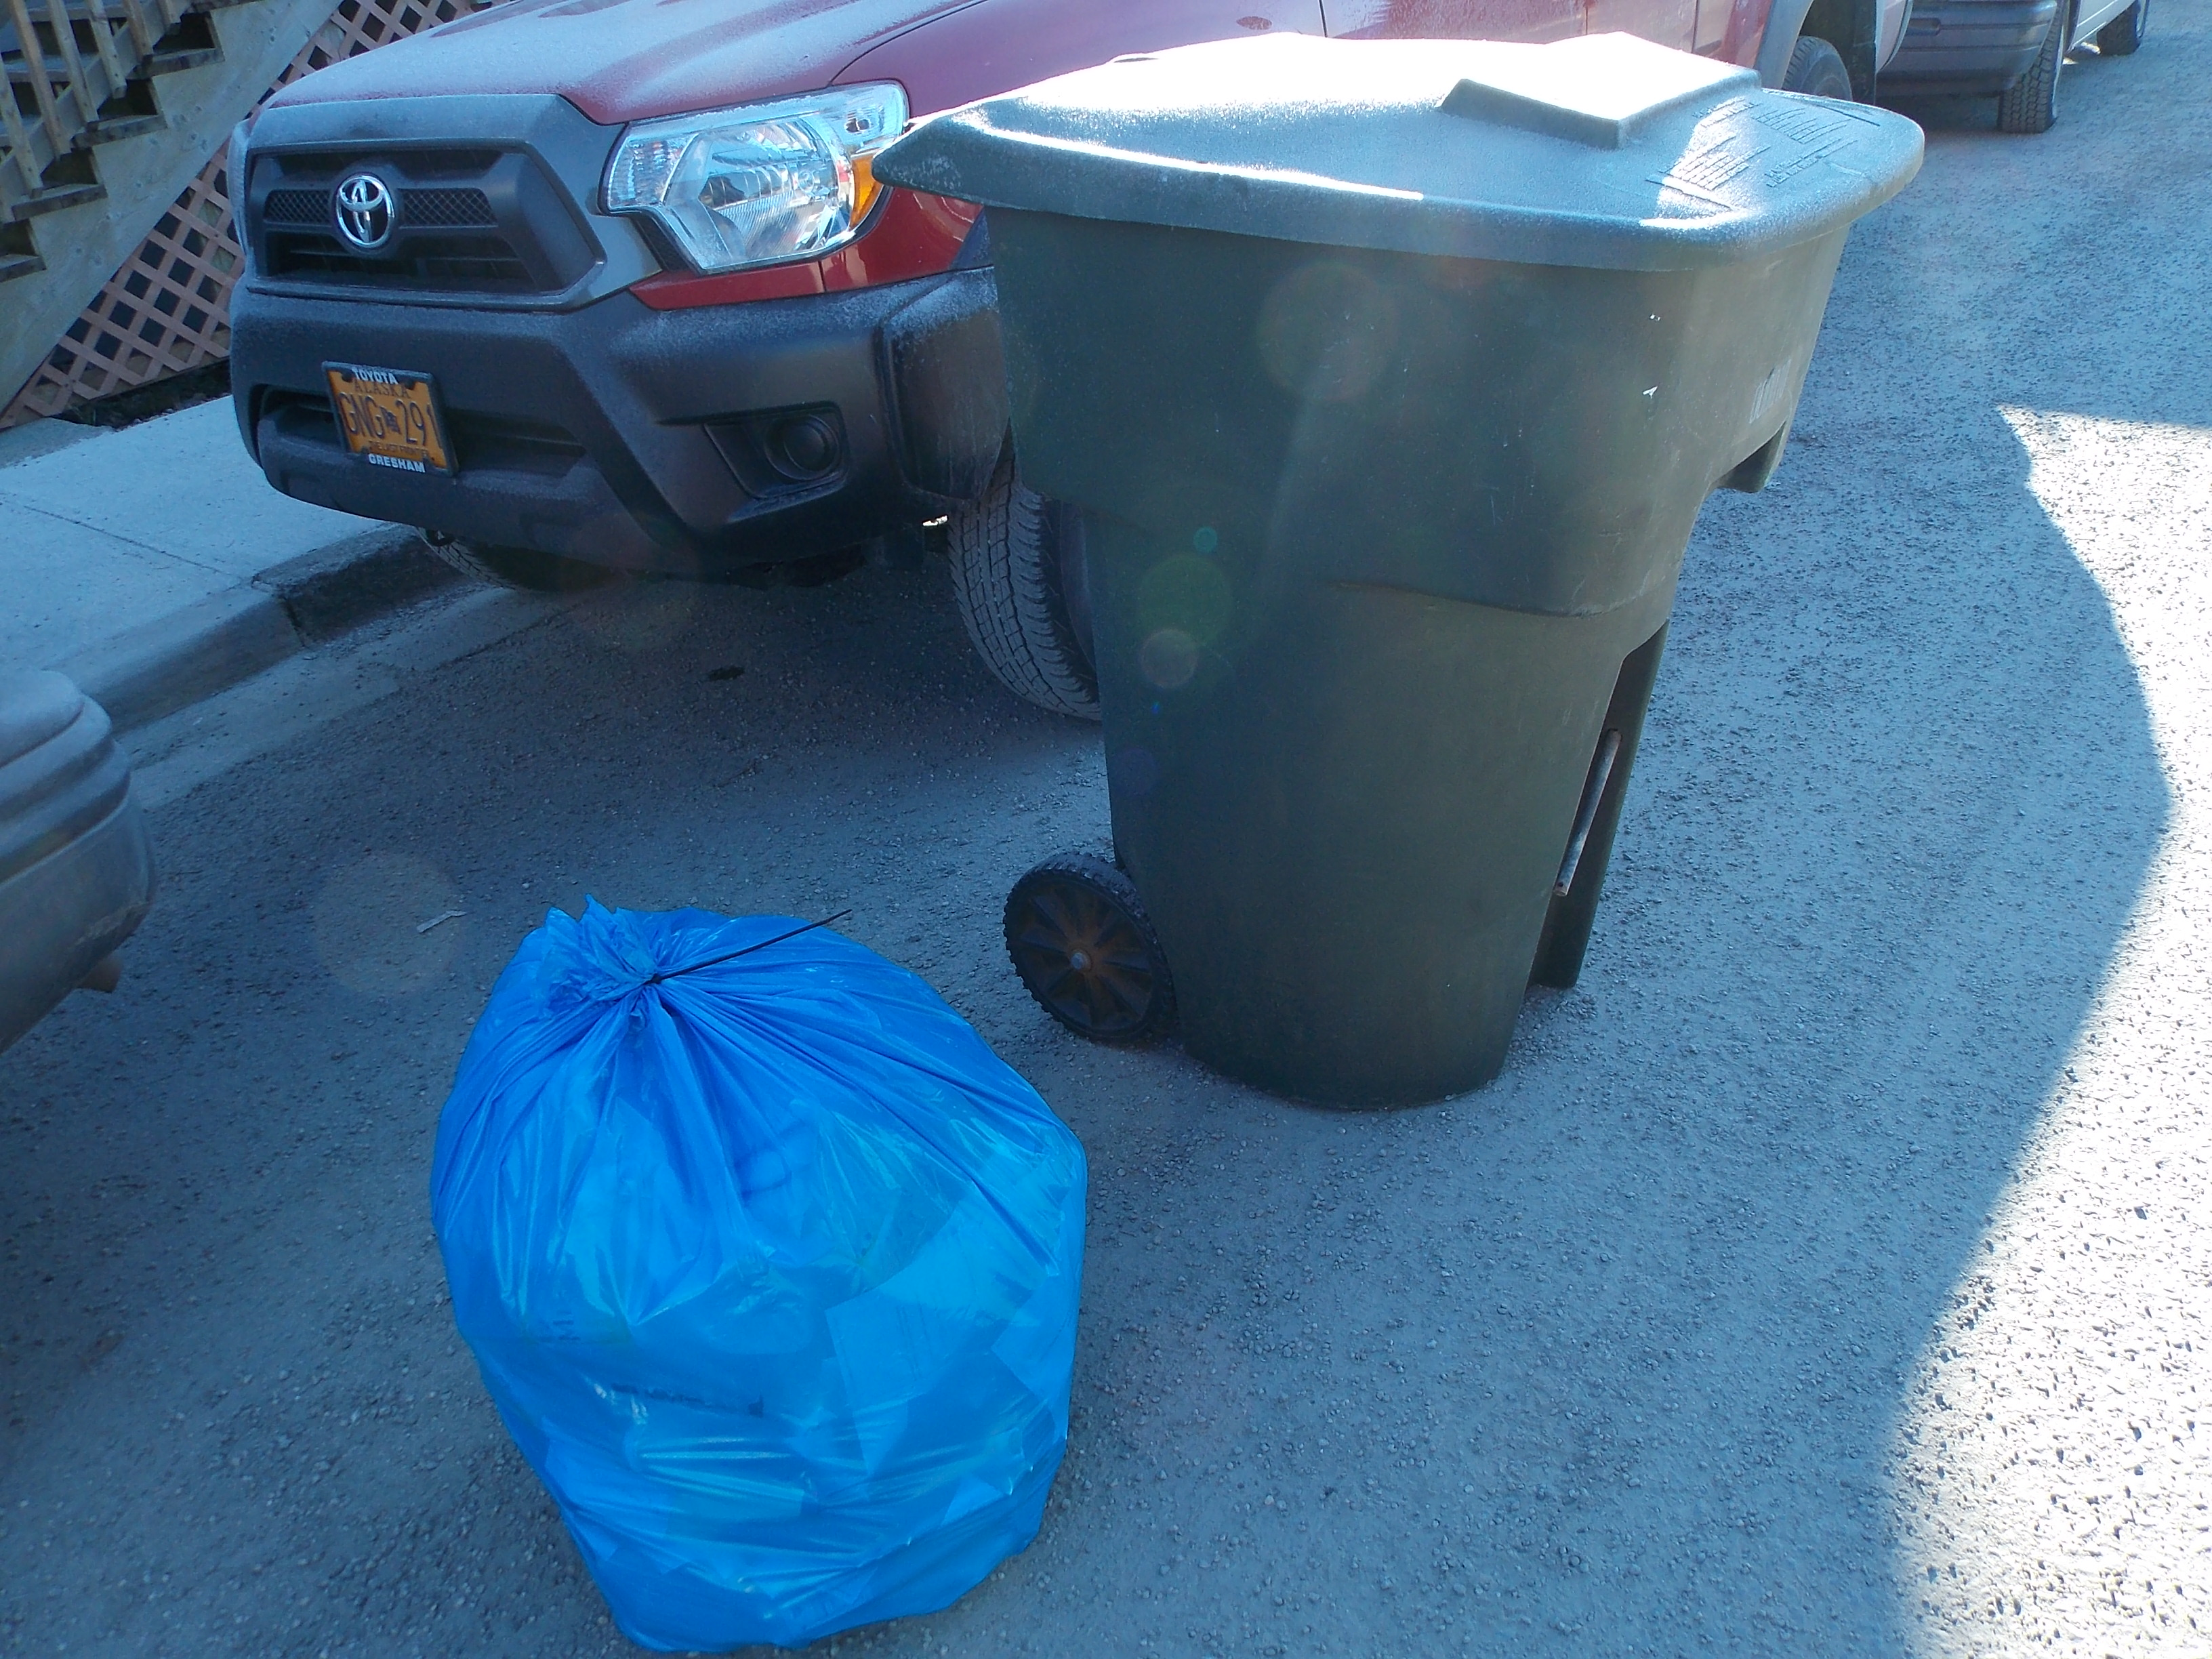 Expanded curbside recycling going well in first week